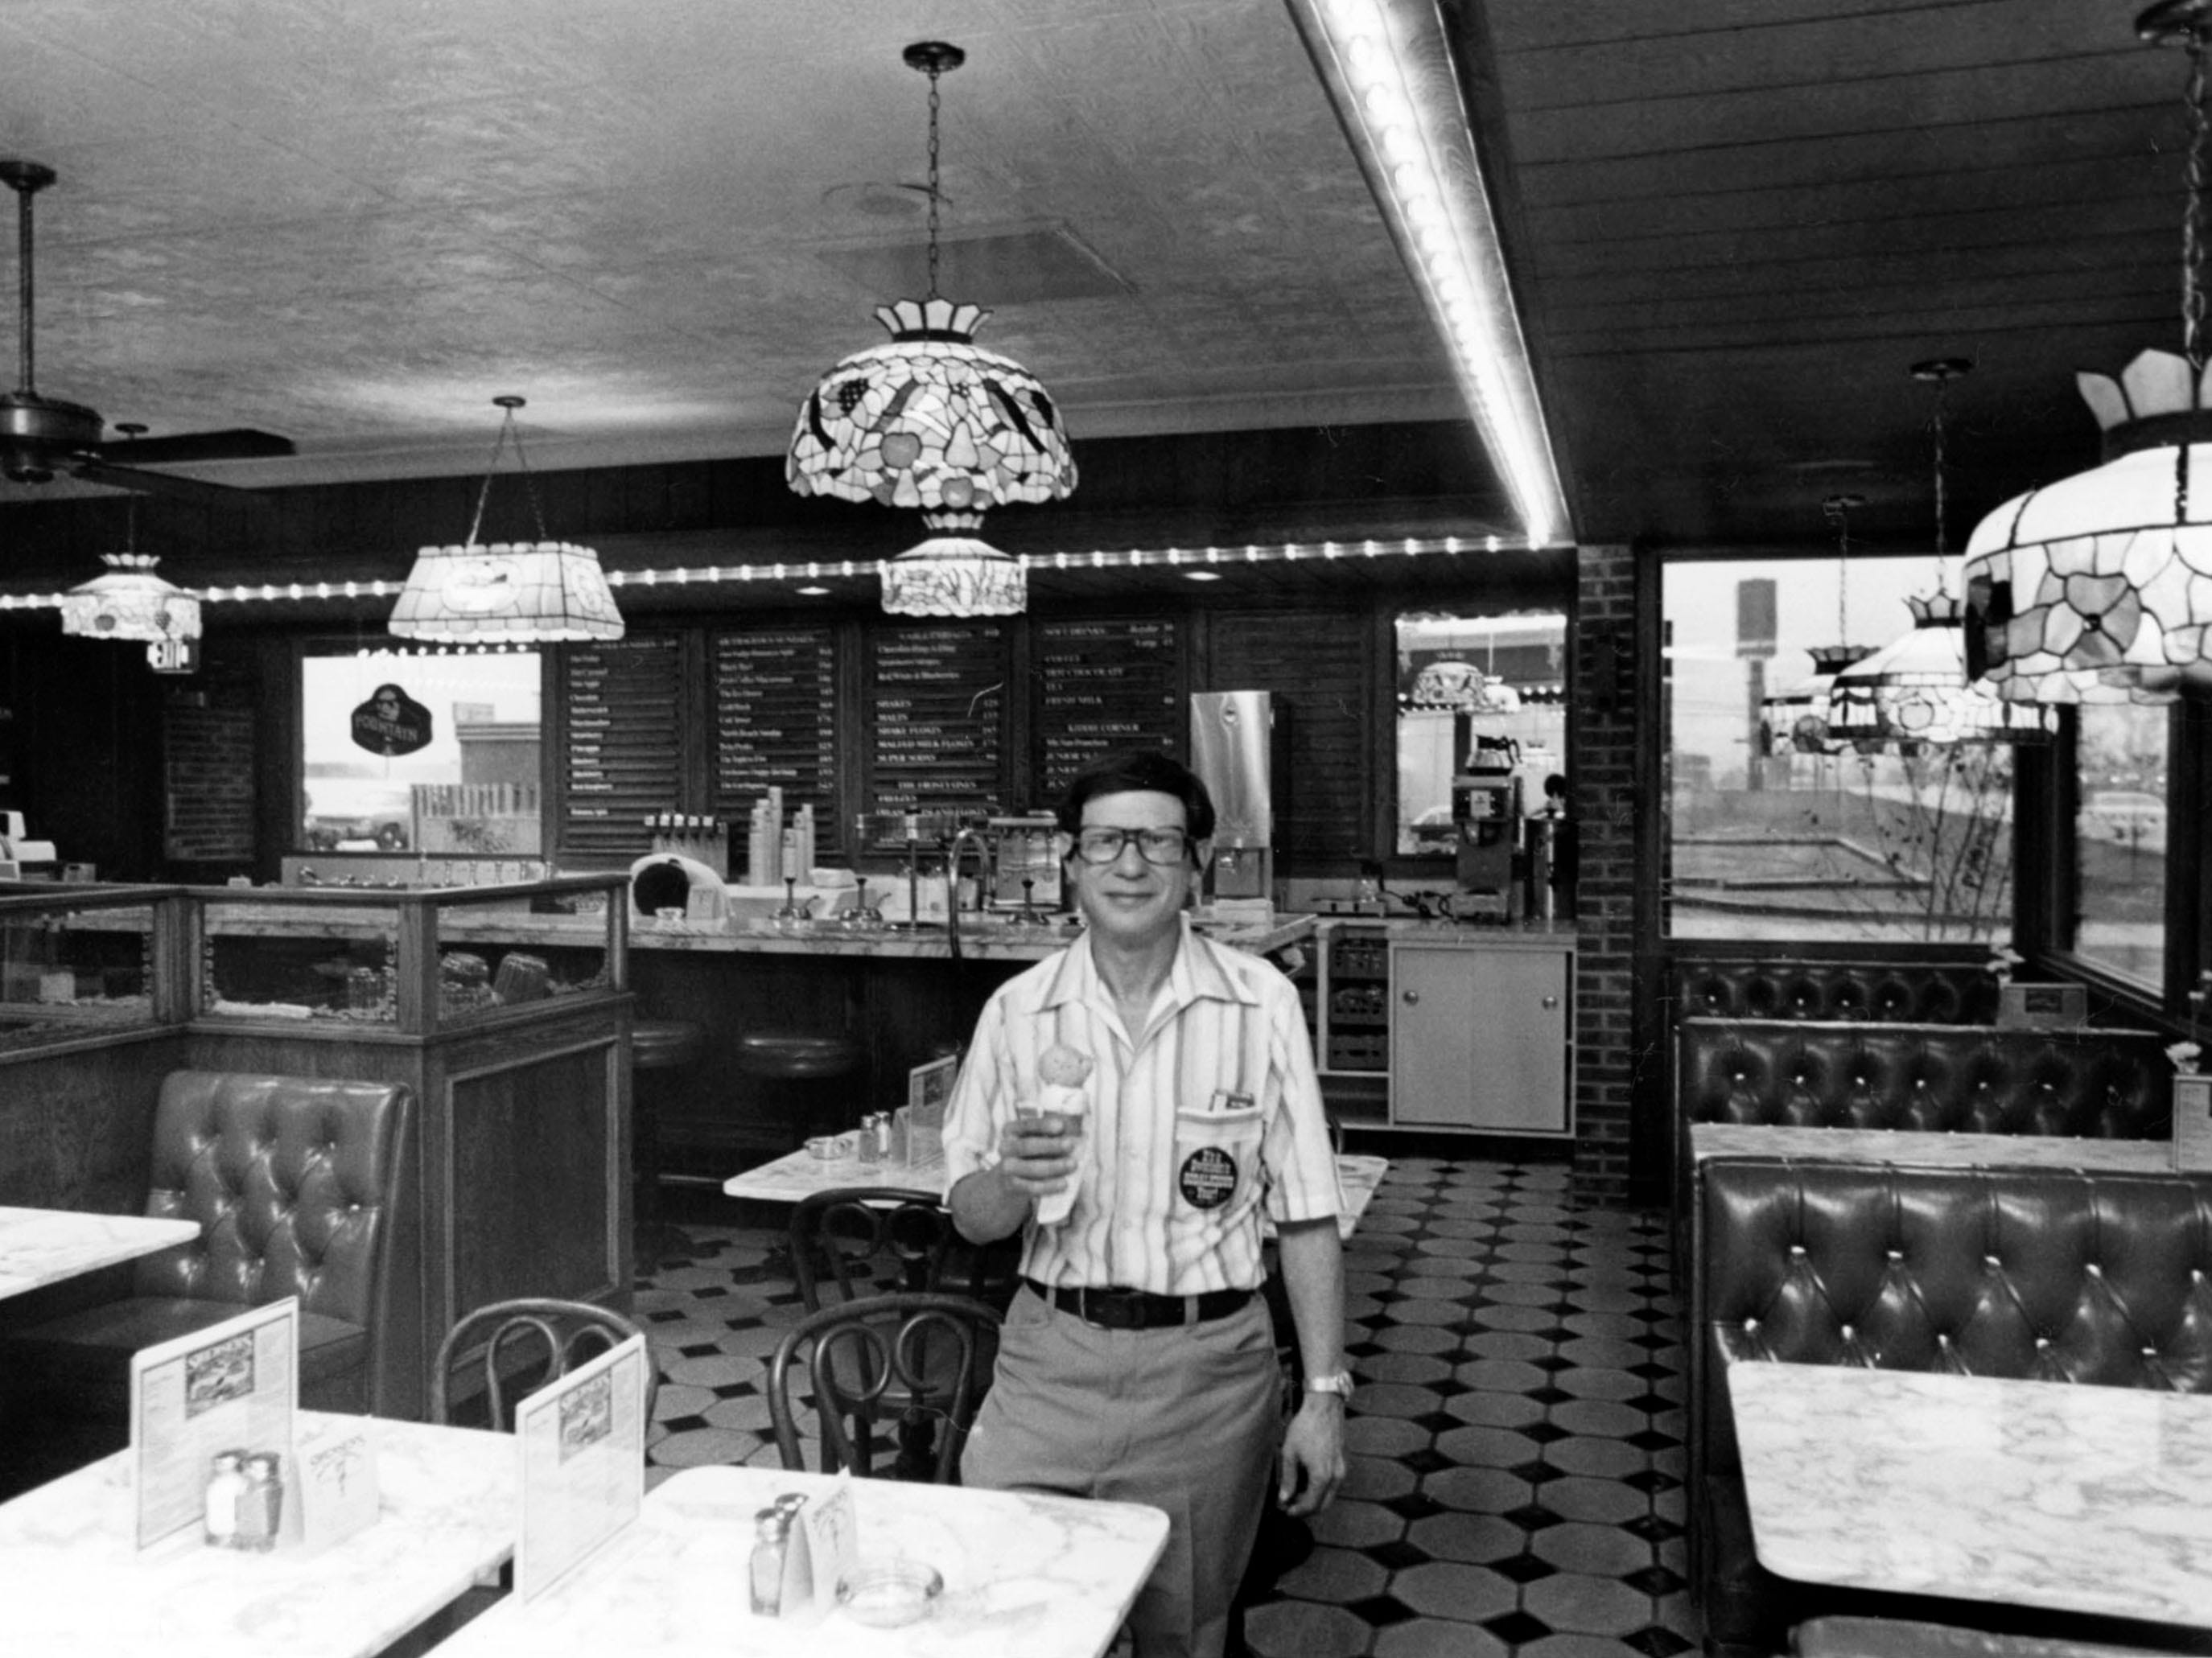 Dick Zivi, owner of Swensen's Ice Cream Factory on Downtown West Blvd. in 1977